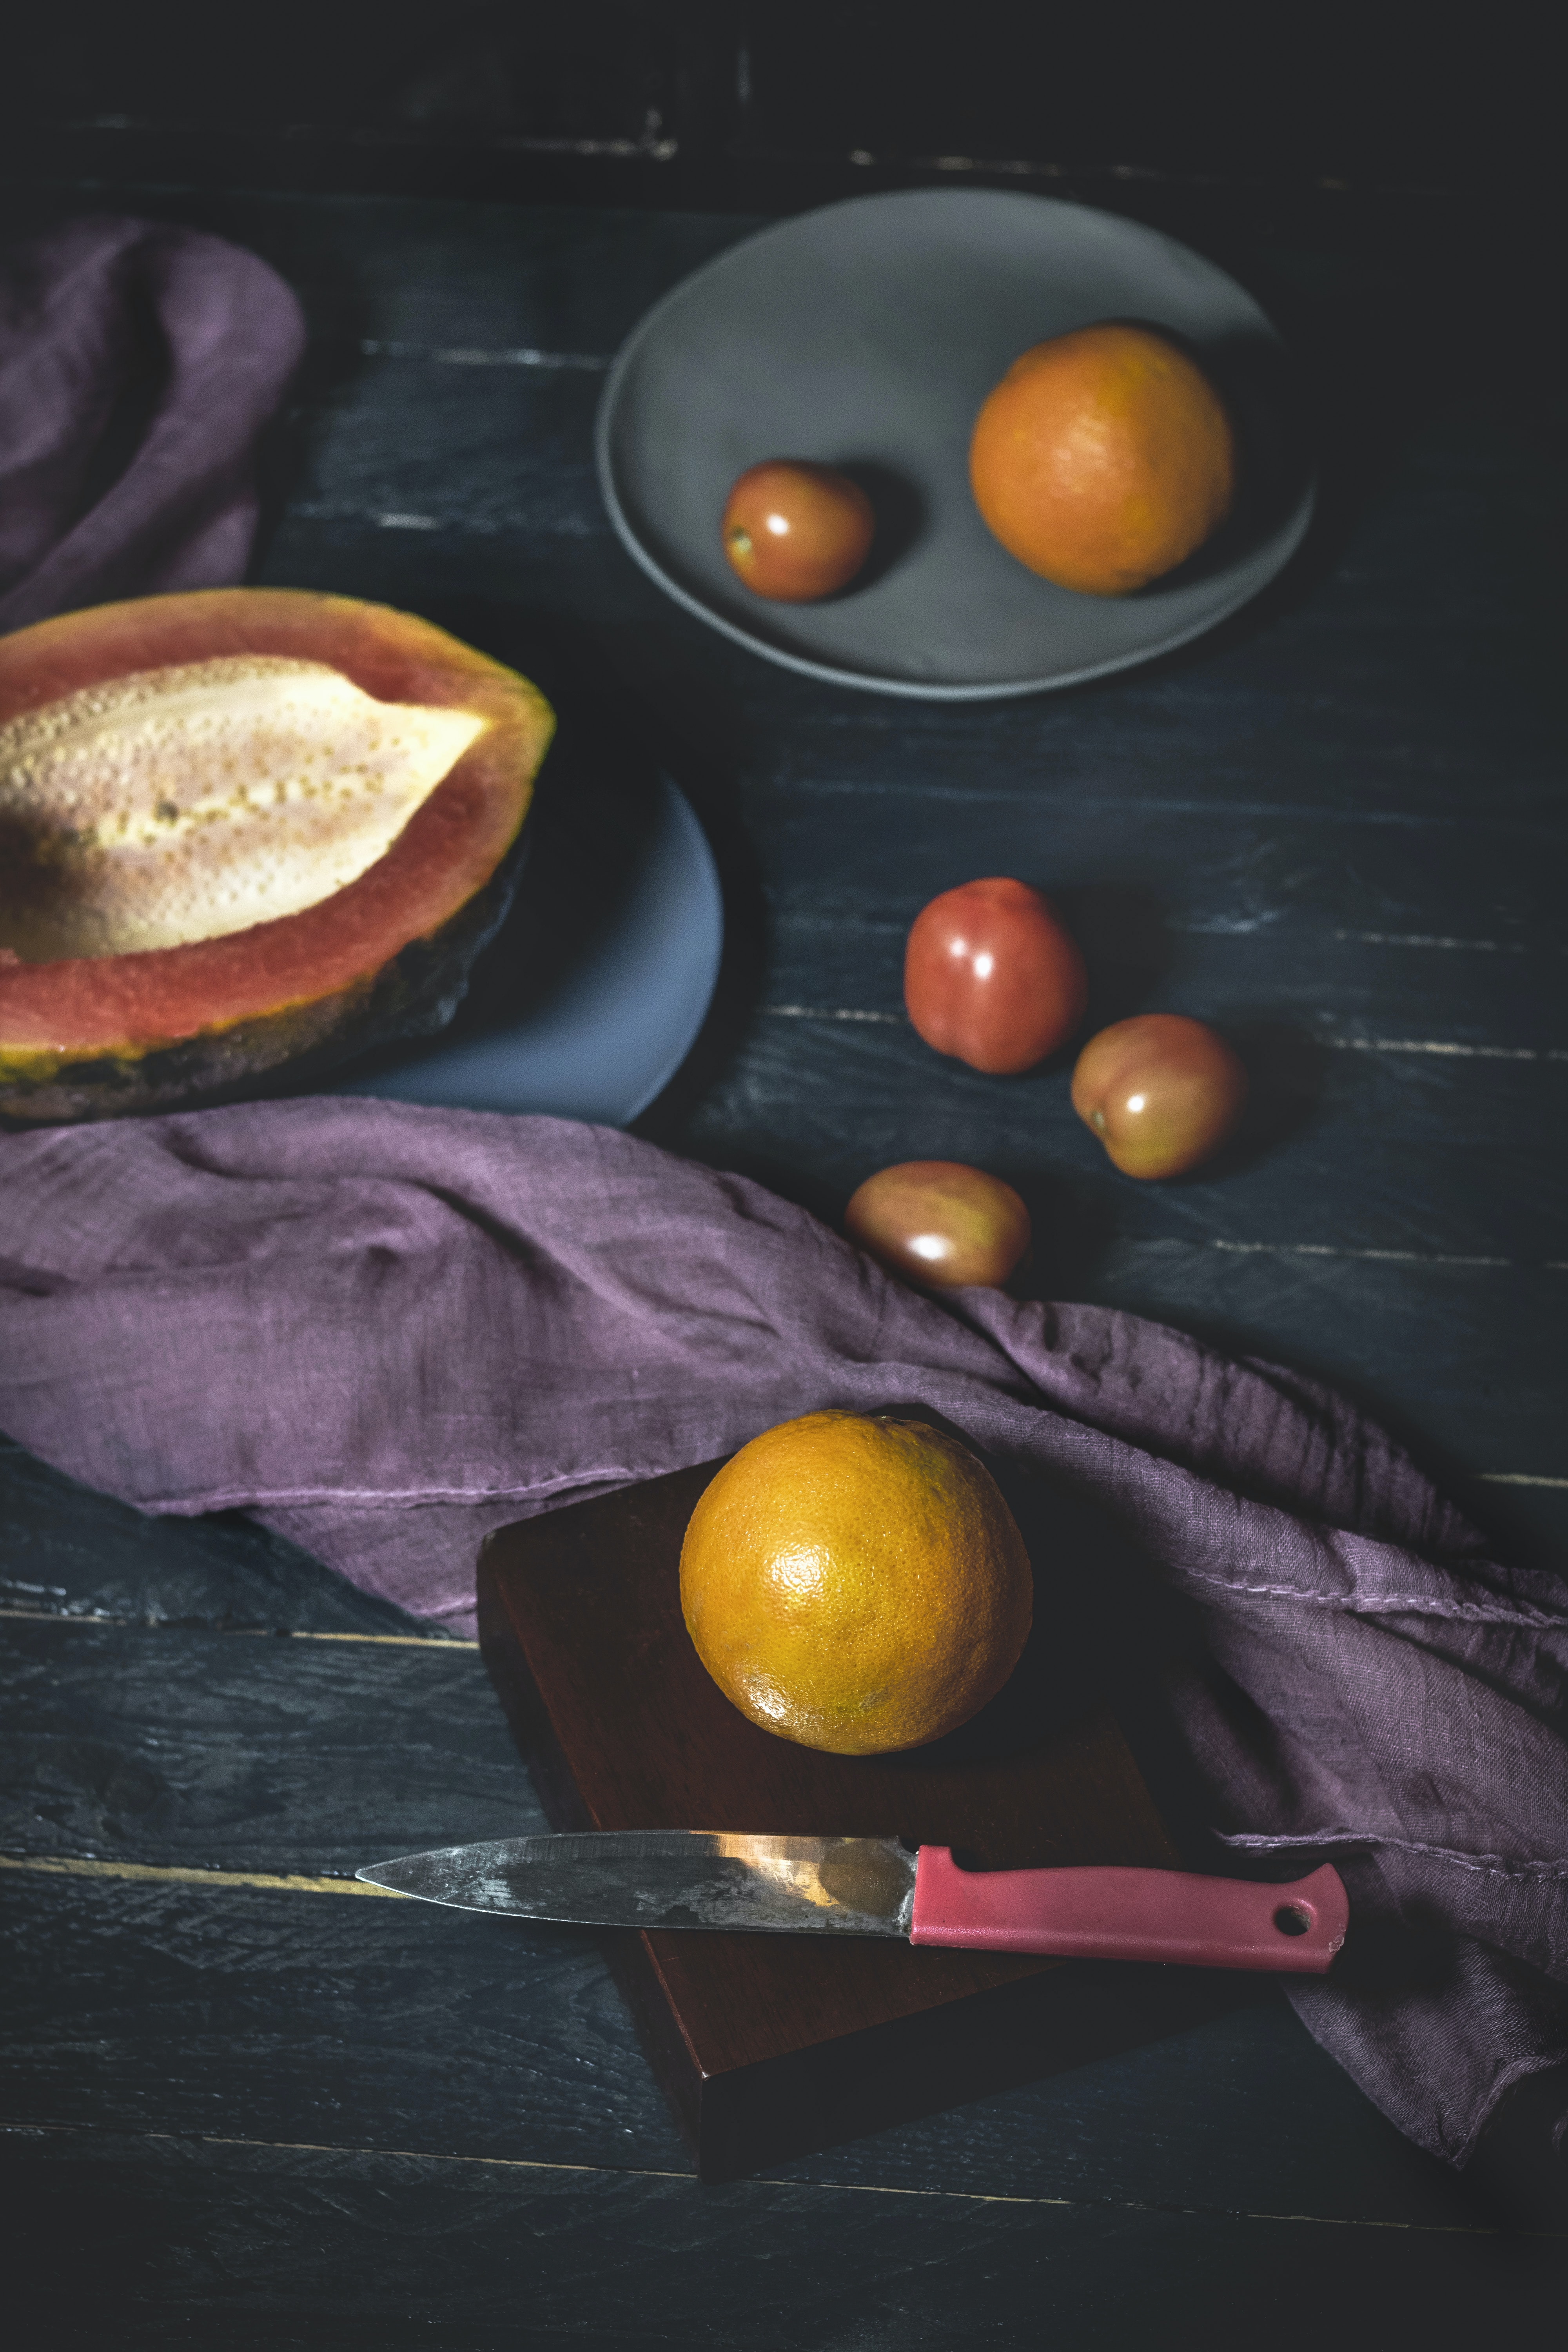 fruits near red and gray knife on wood